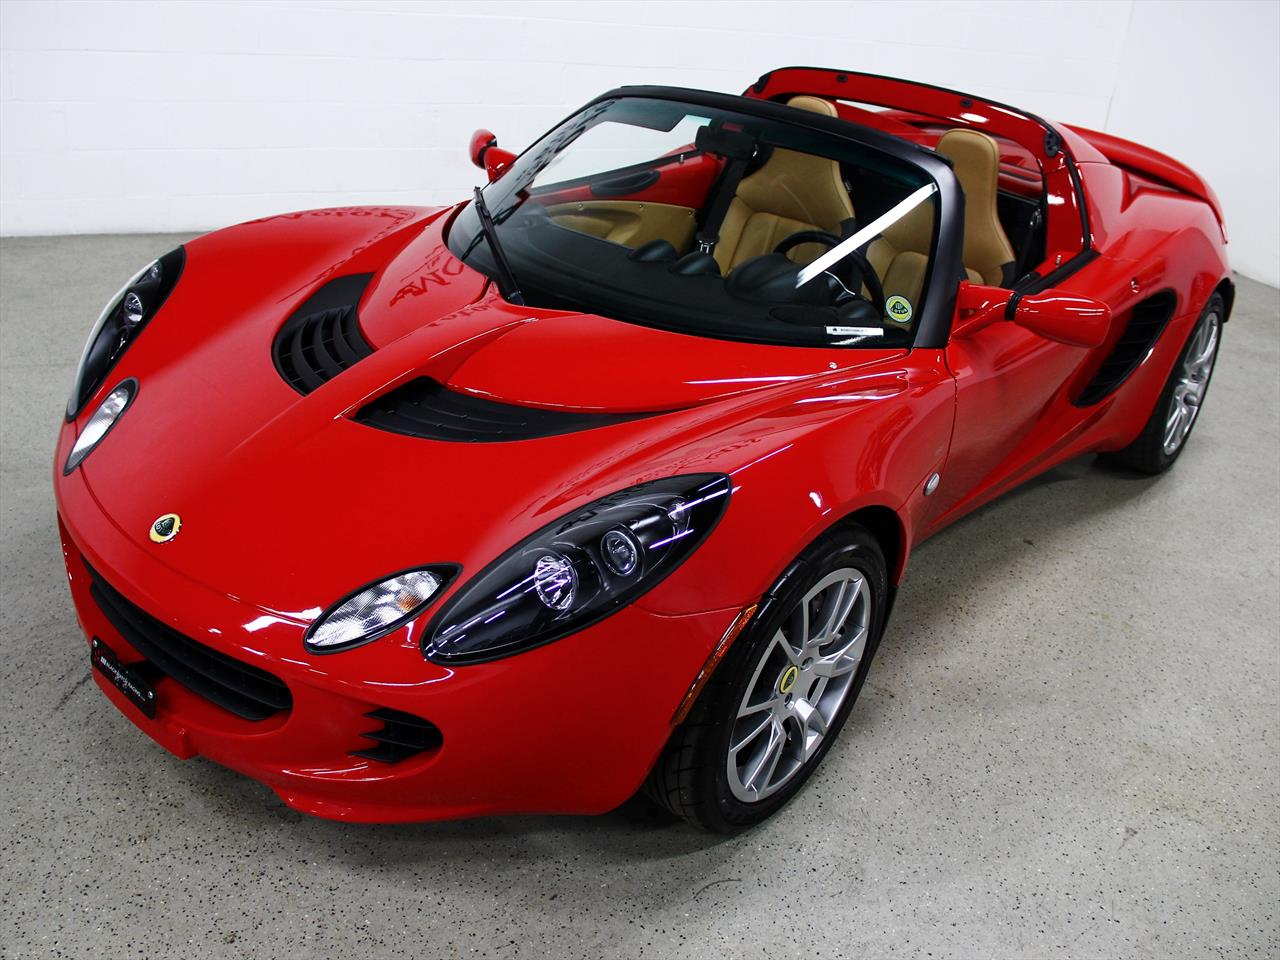 2009 lotus elise sc. Black Bedroom Furniture Sets. Home Design Ideas